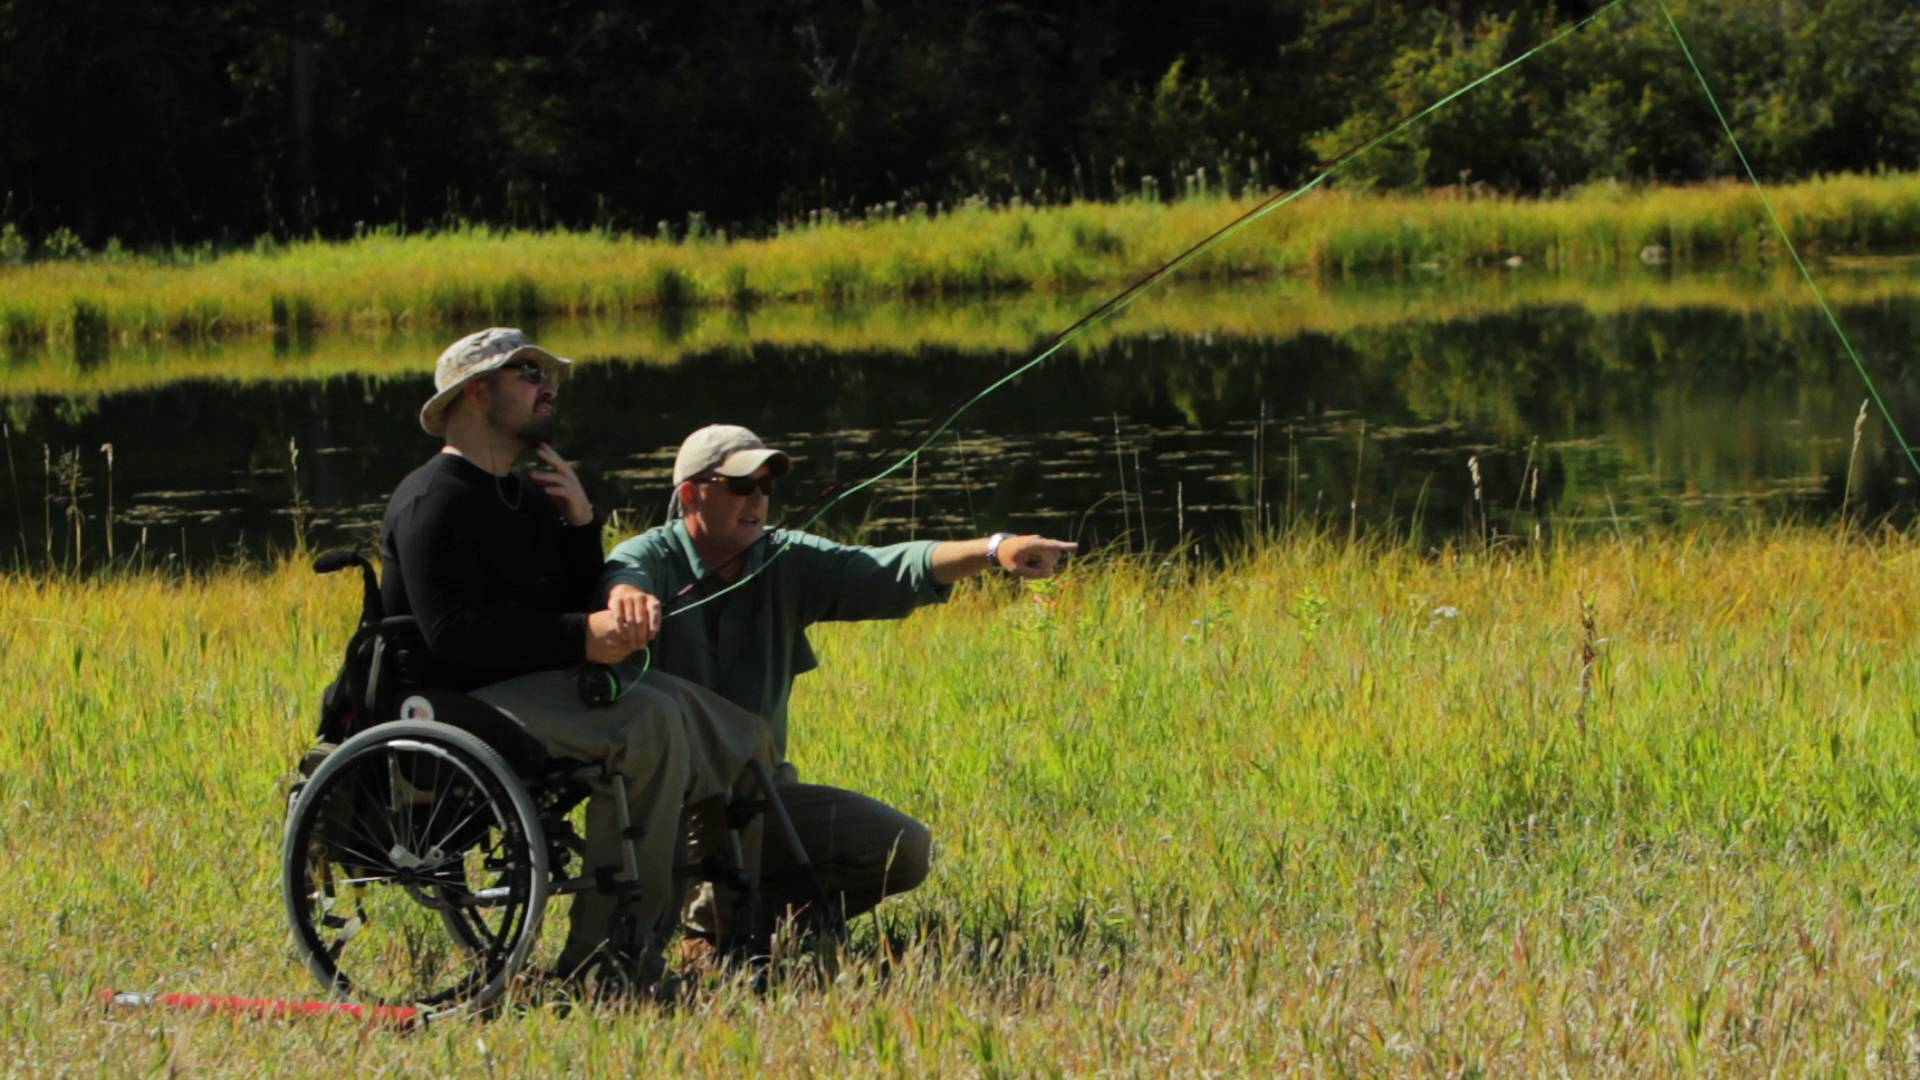 Former Navy SEAL and wounded warrior Elliott Miller begins his journey to recovery on the rivers of Montana.